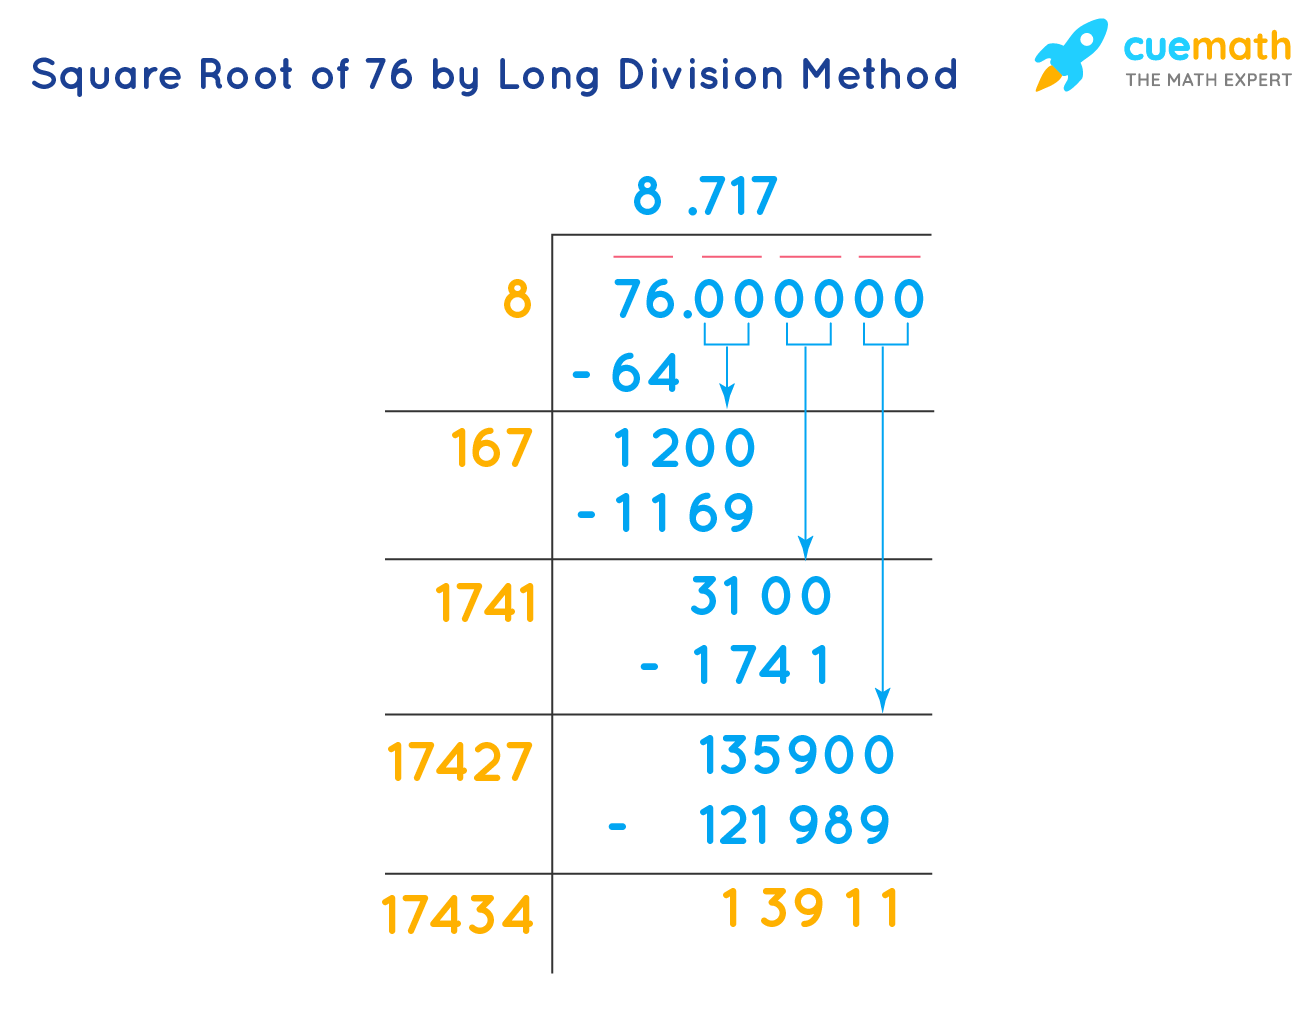 Square Root of 76 by Long Division Method